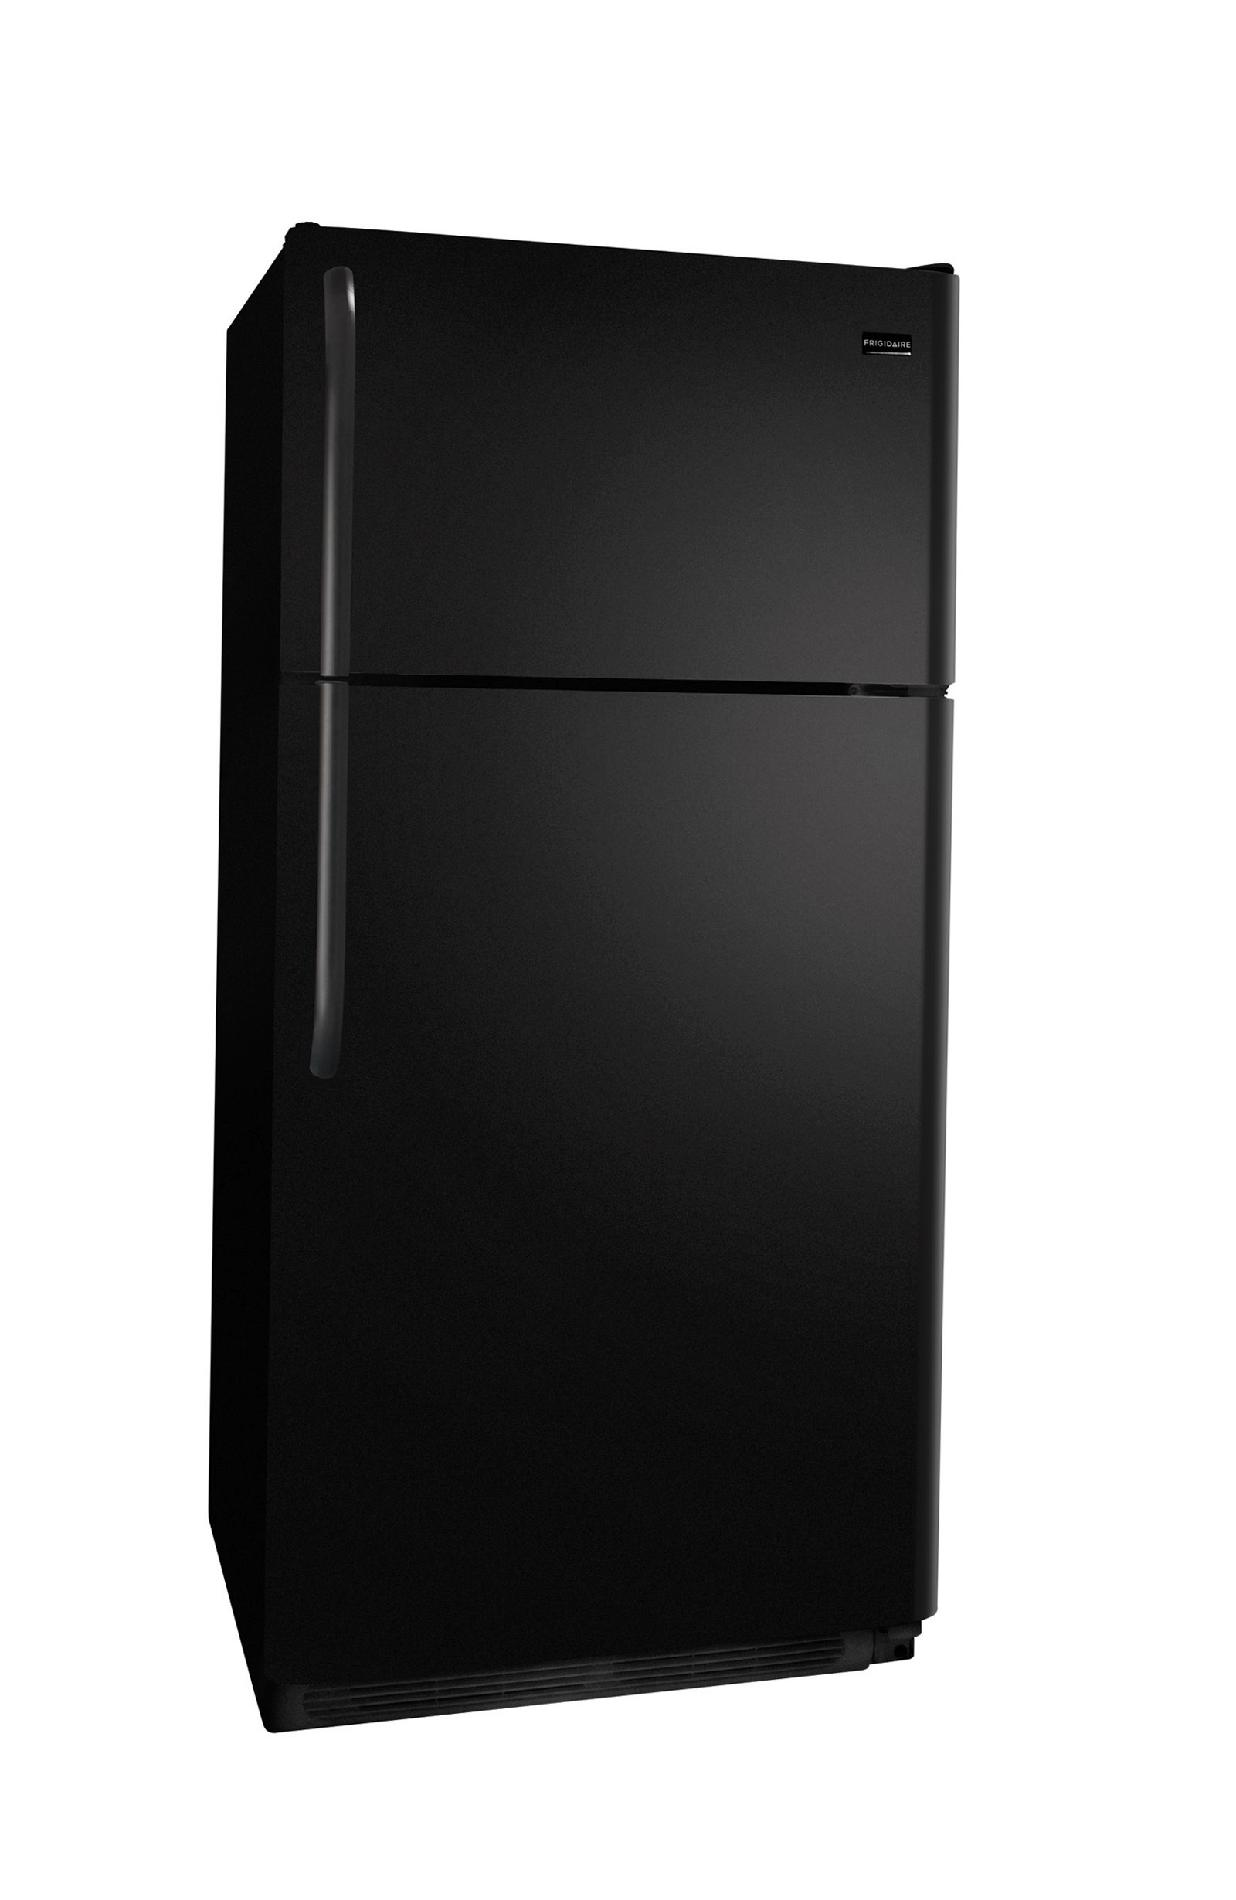 Frigidaire 18.2 cu. ft. Top-Freezer Refrigerator - Black